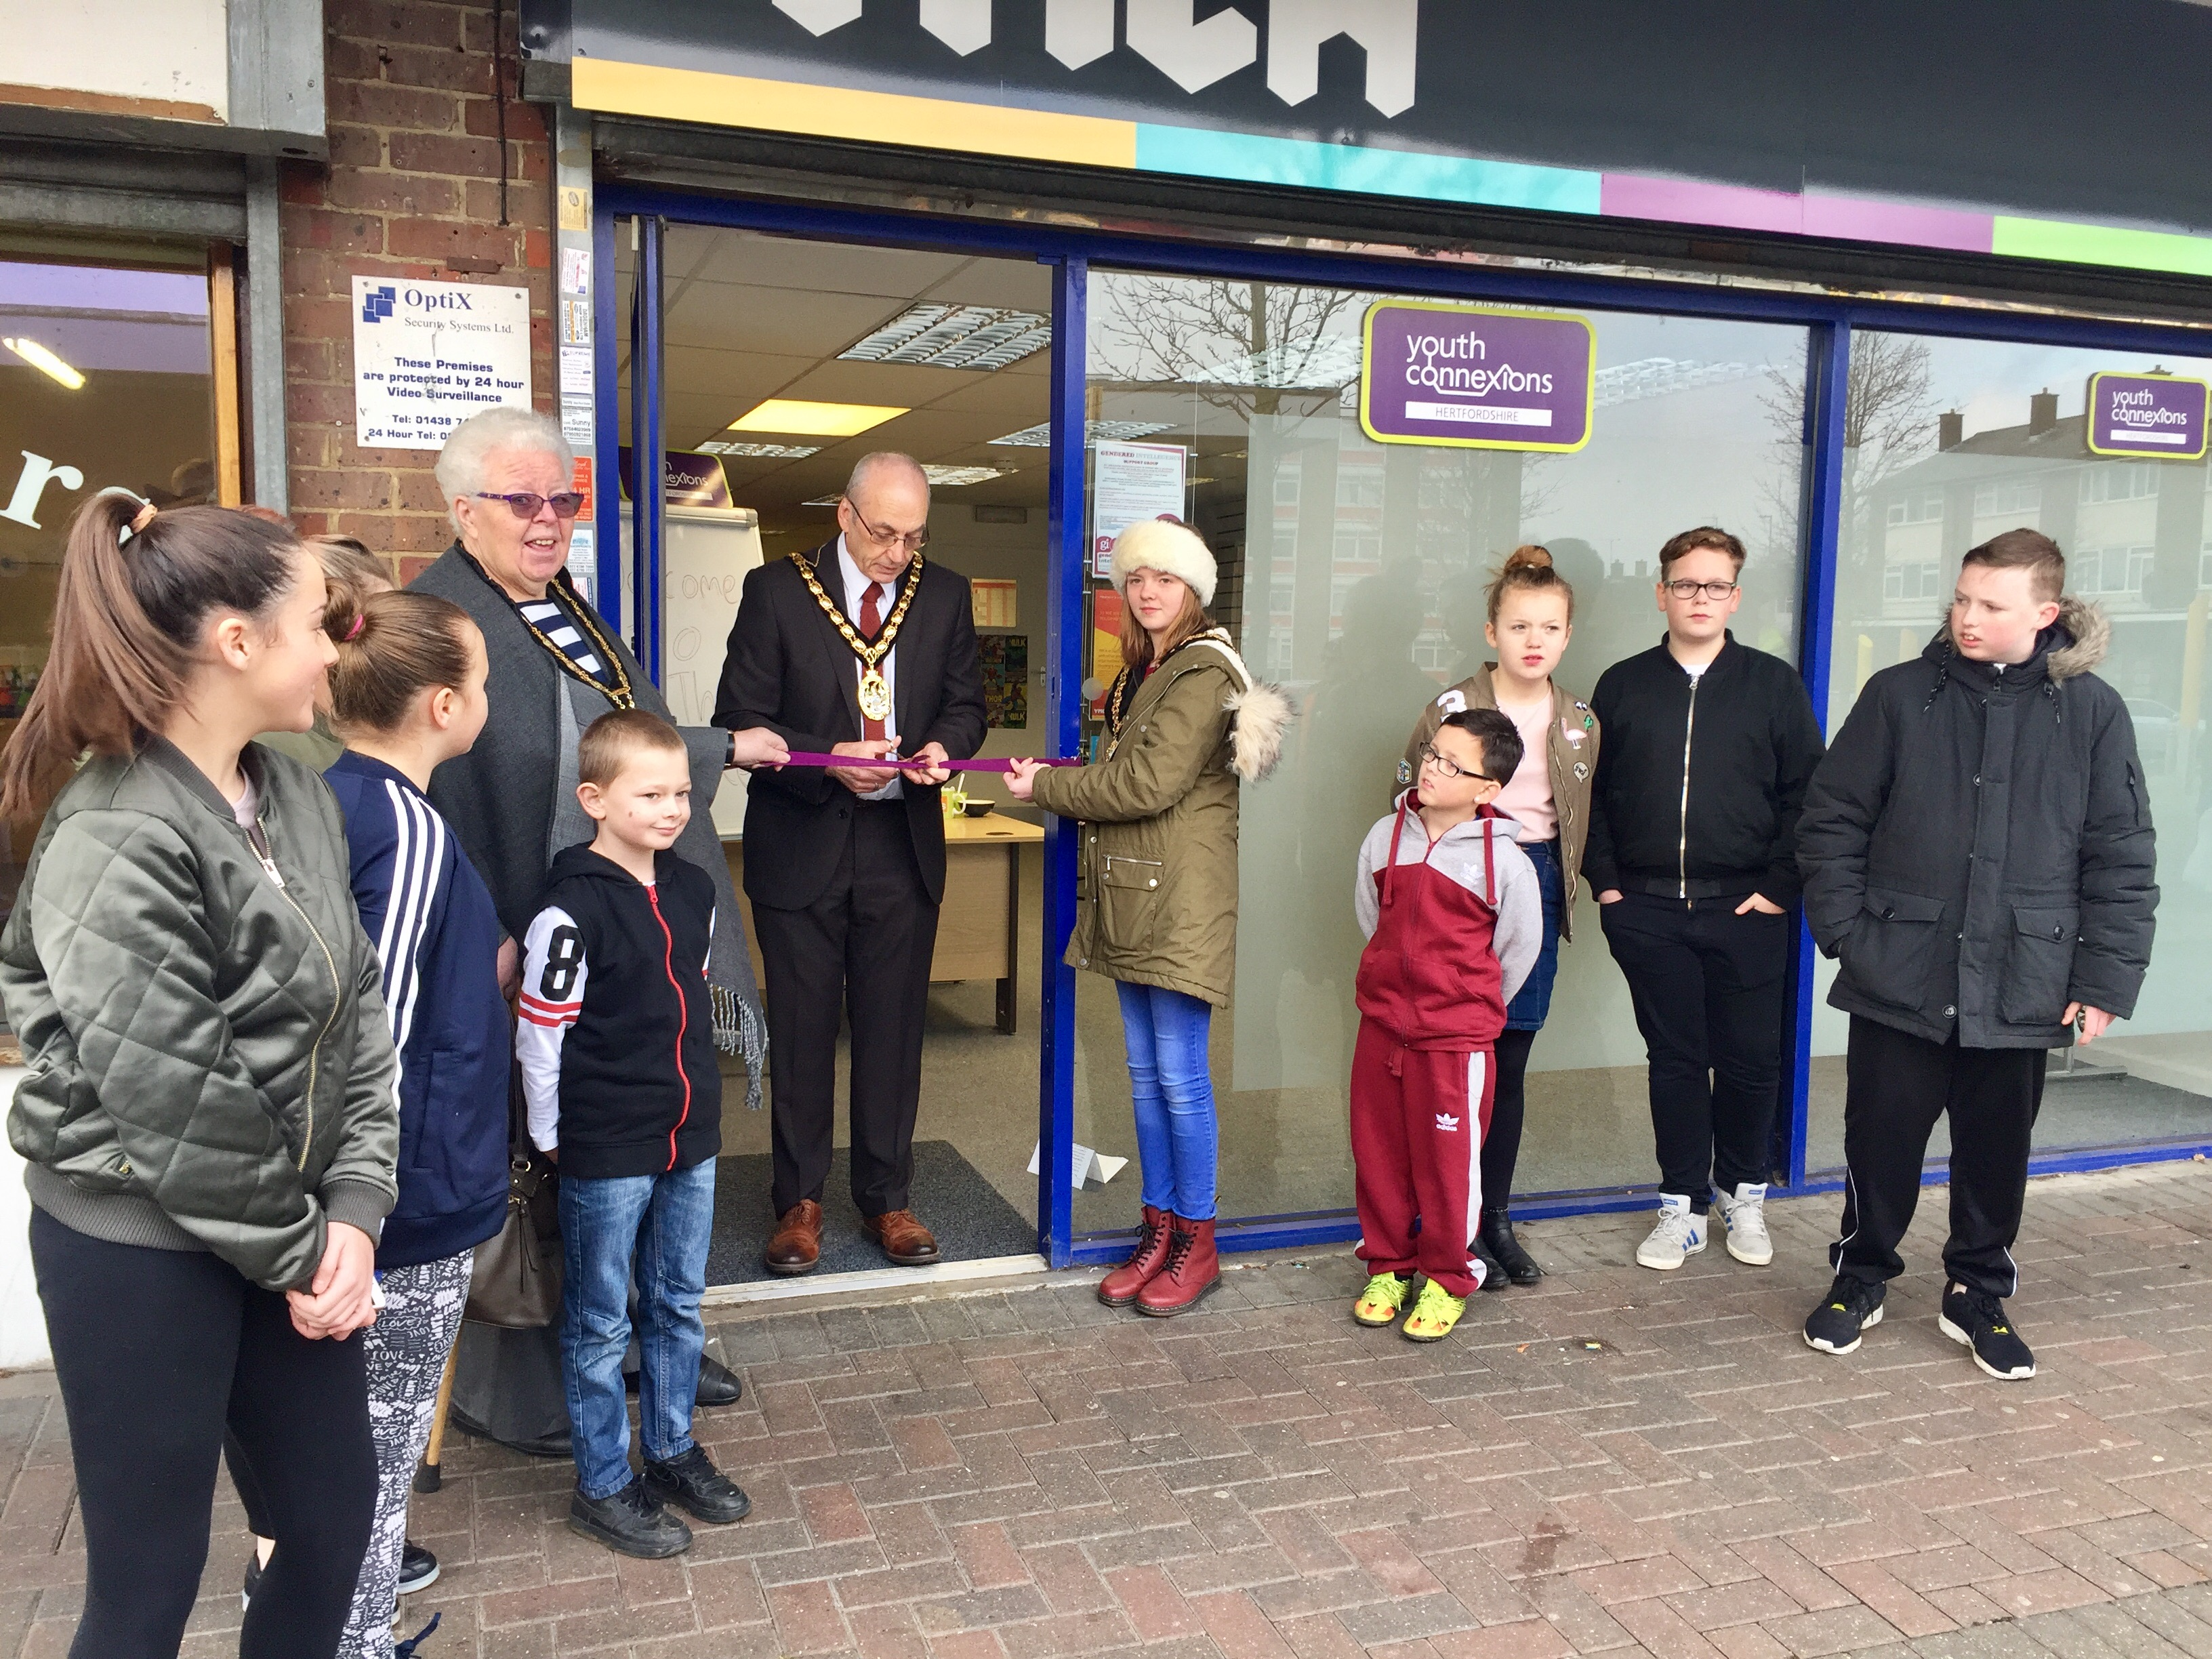 The Hyde youth project opens its doors to young people in Shephall